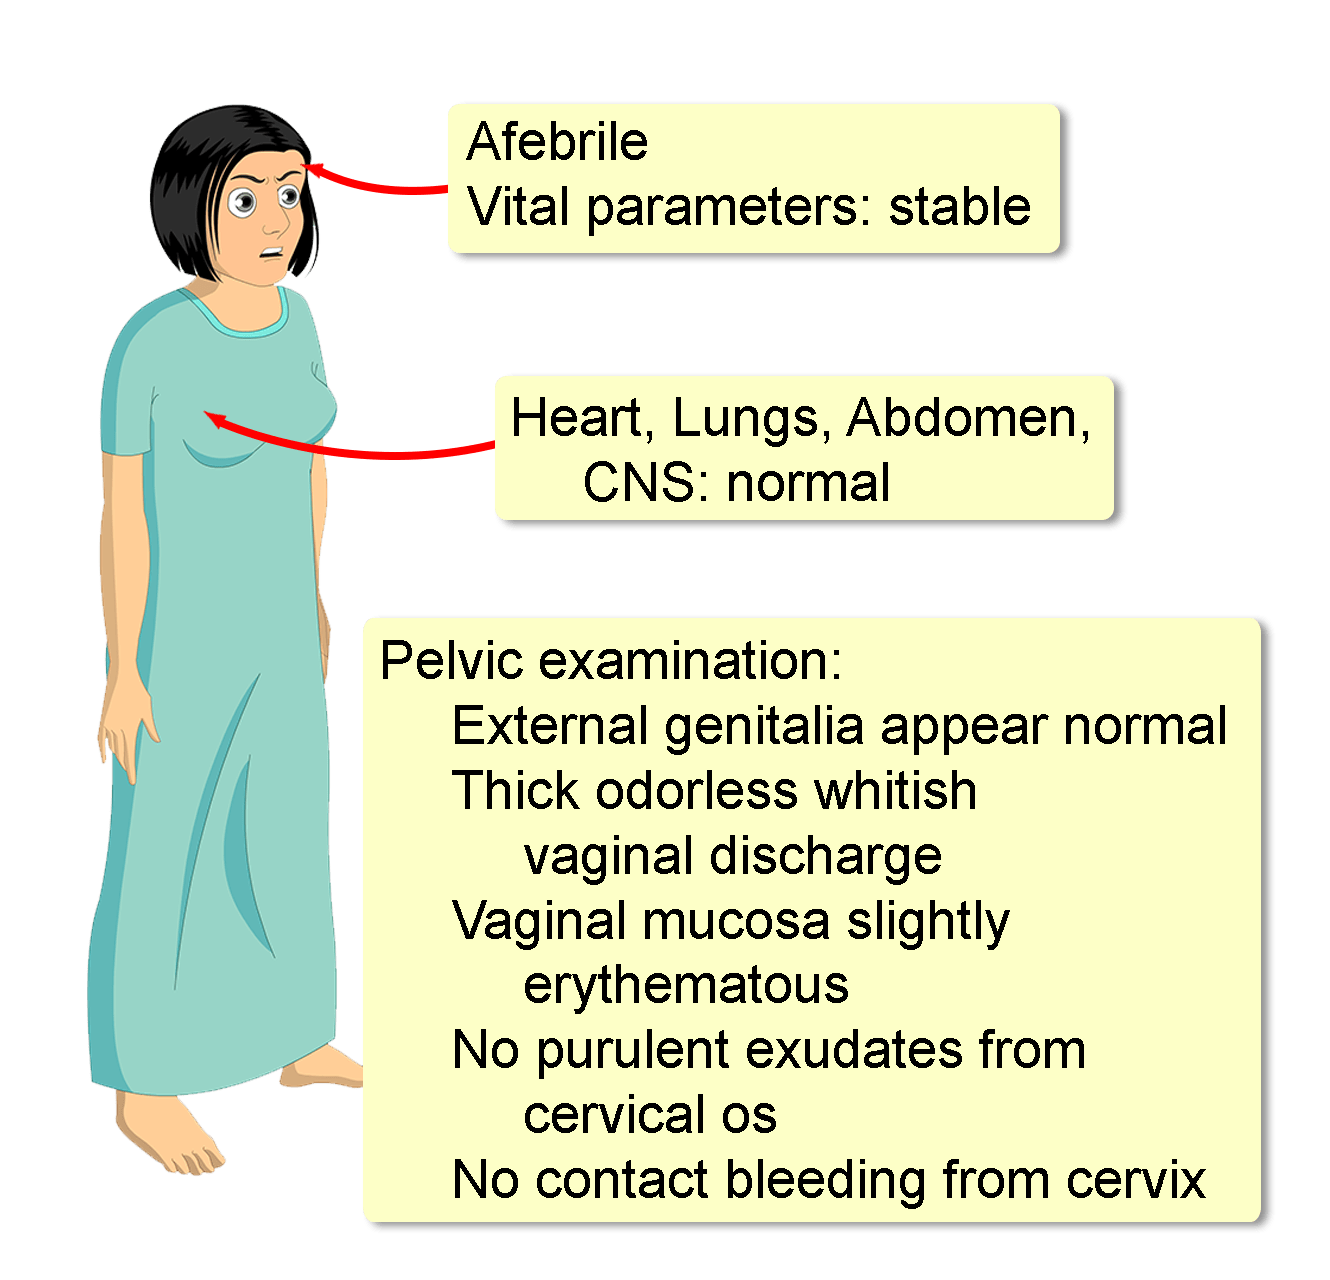 Cytolytic vaginosis. (quoted from www.google.com